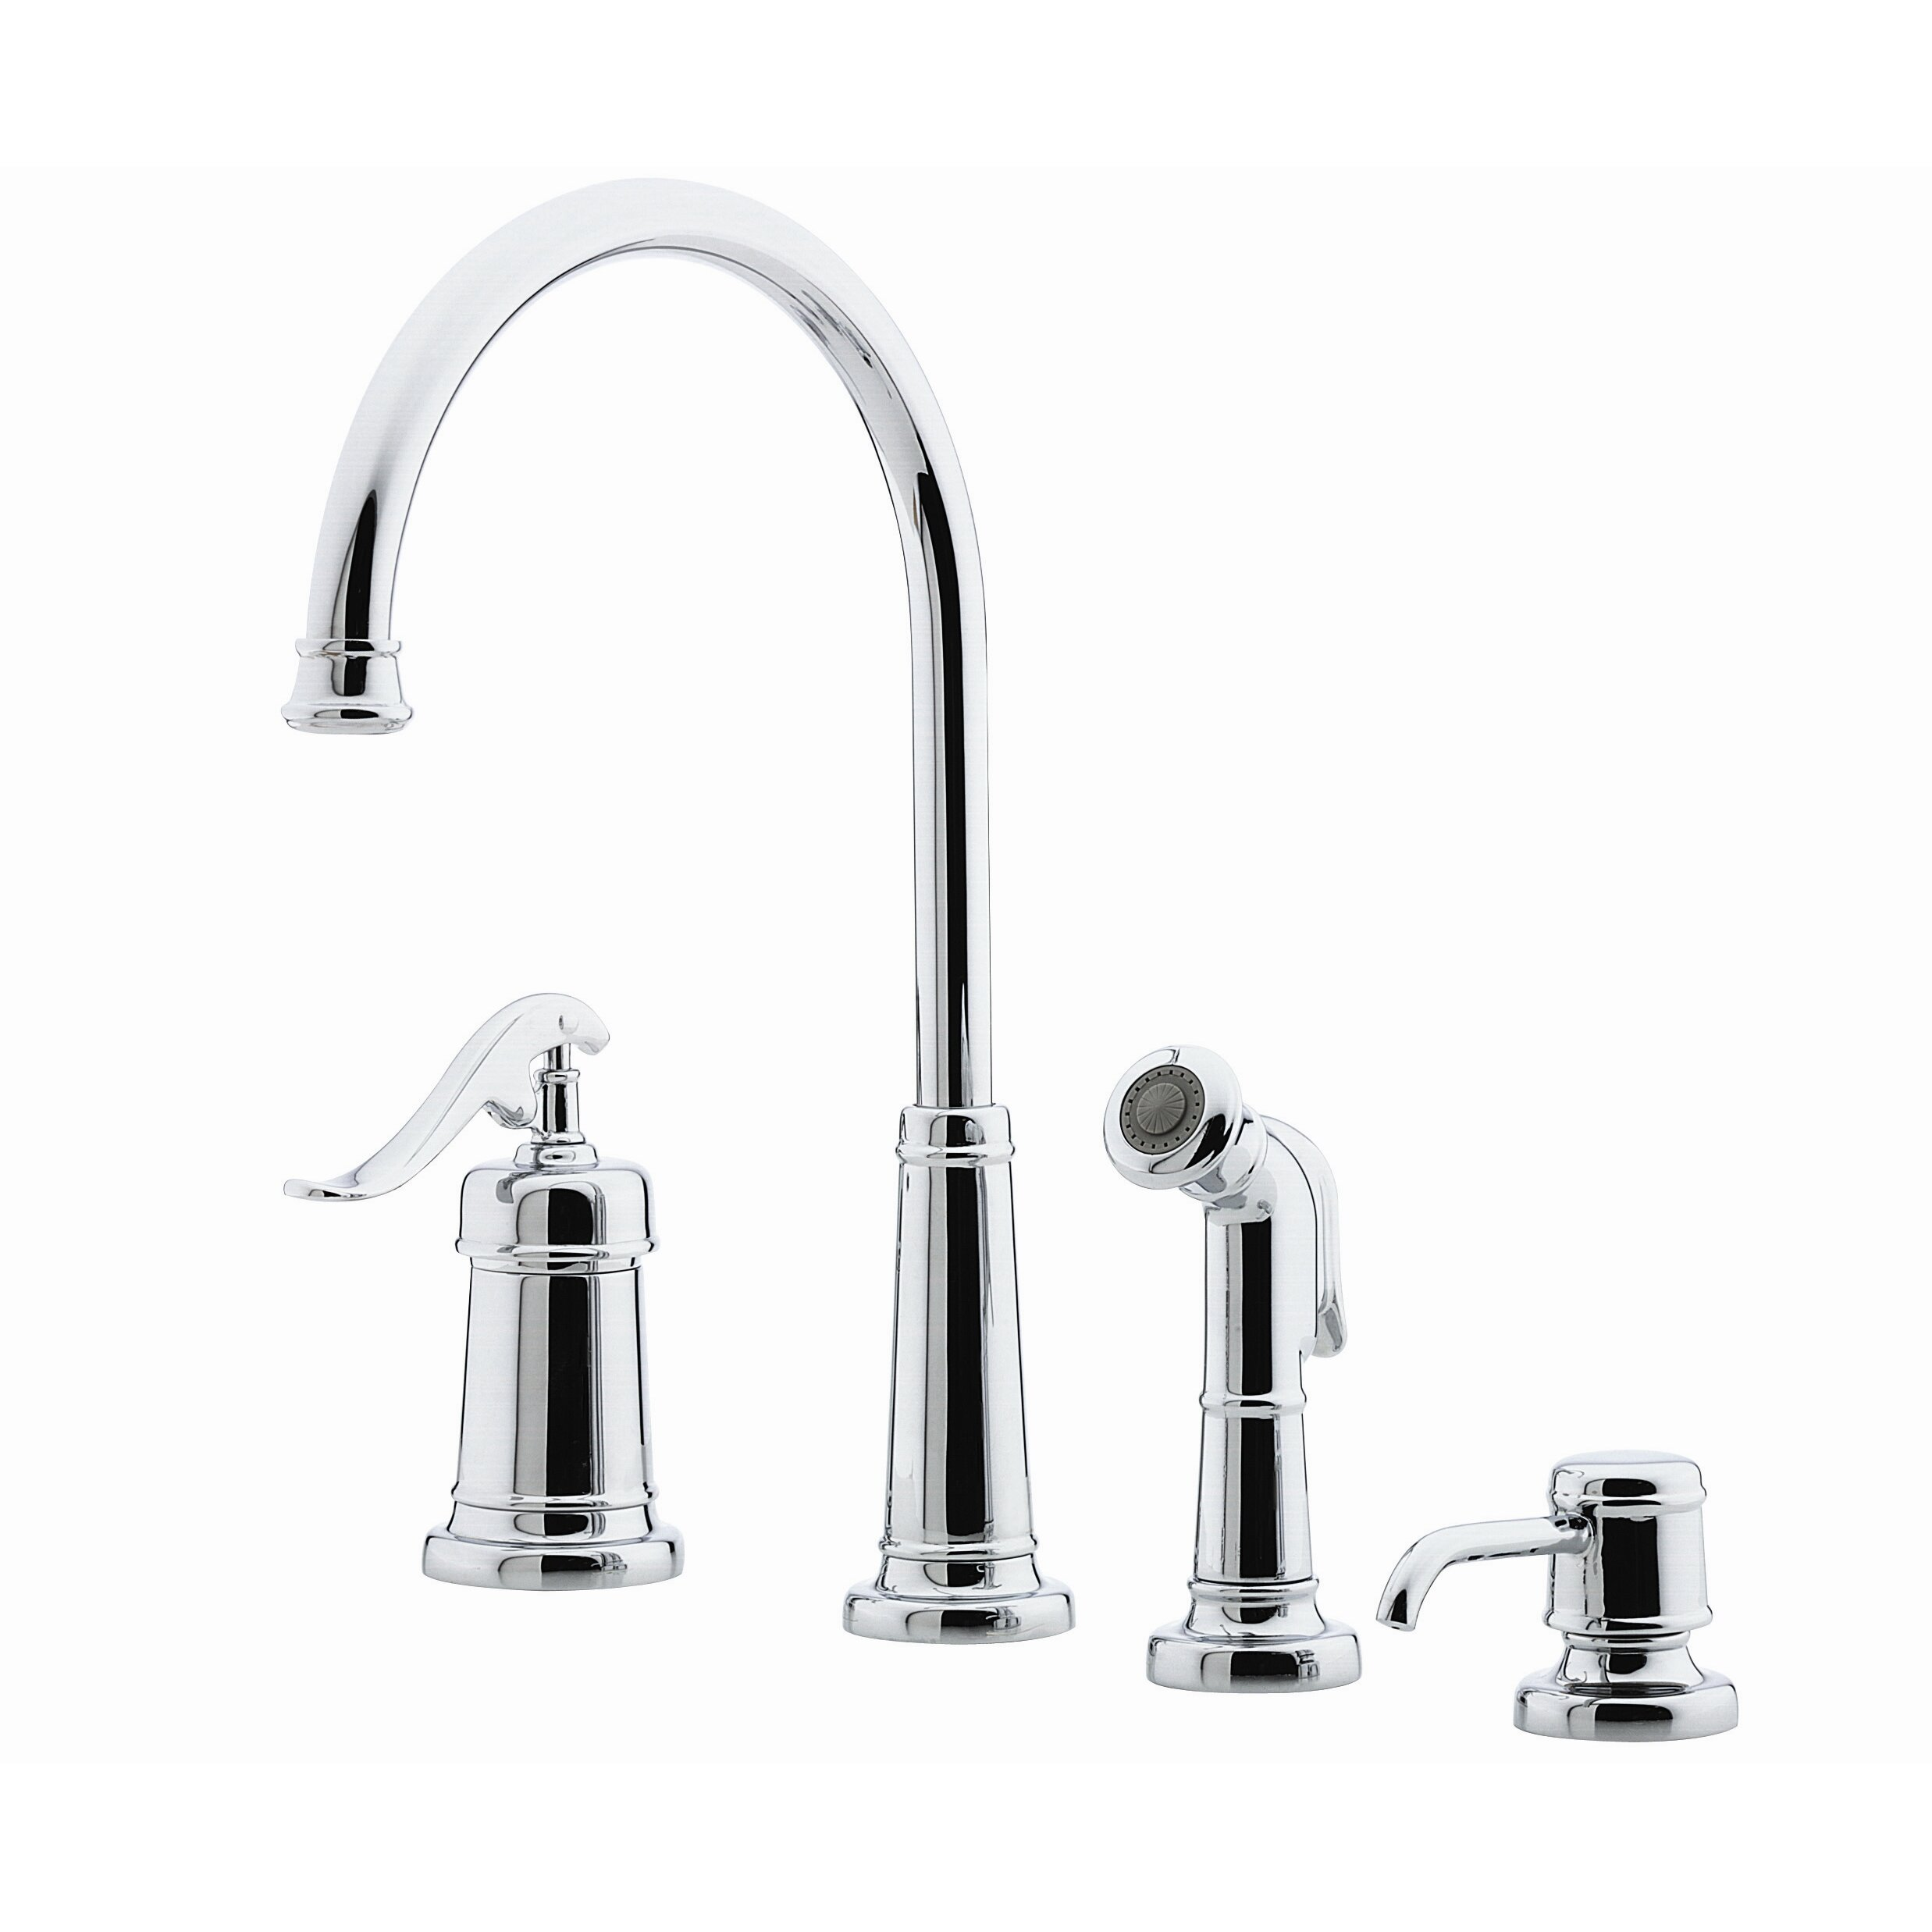 Pfister Kitchen Faucet Pfister Ashfield Single Handle Deck Mounted Kitchen Faucet With